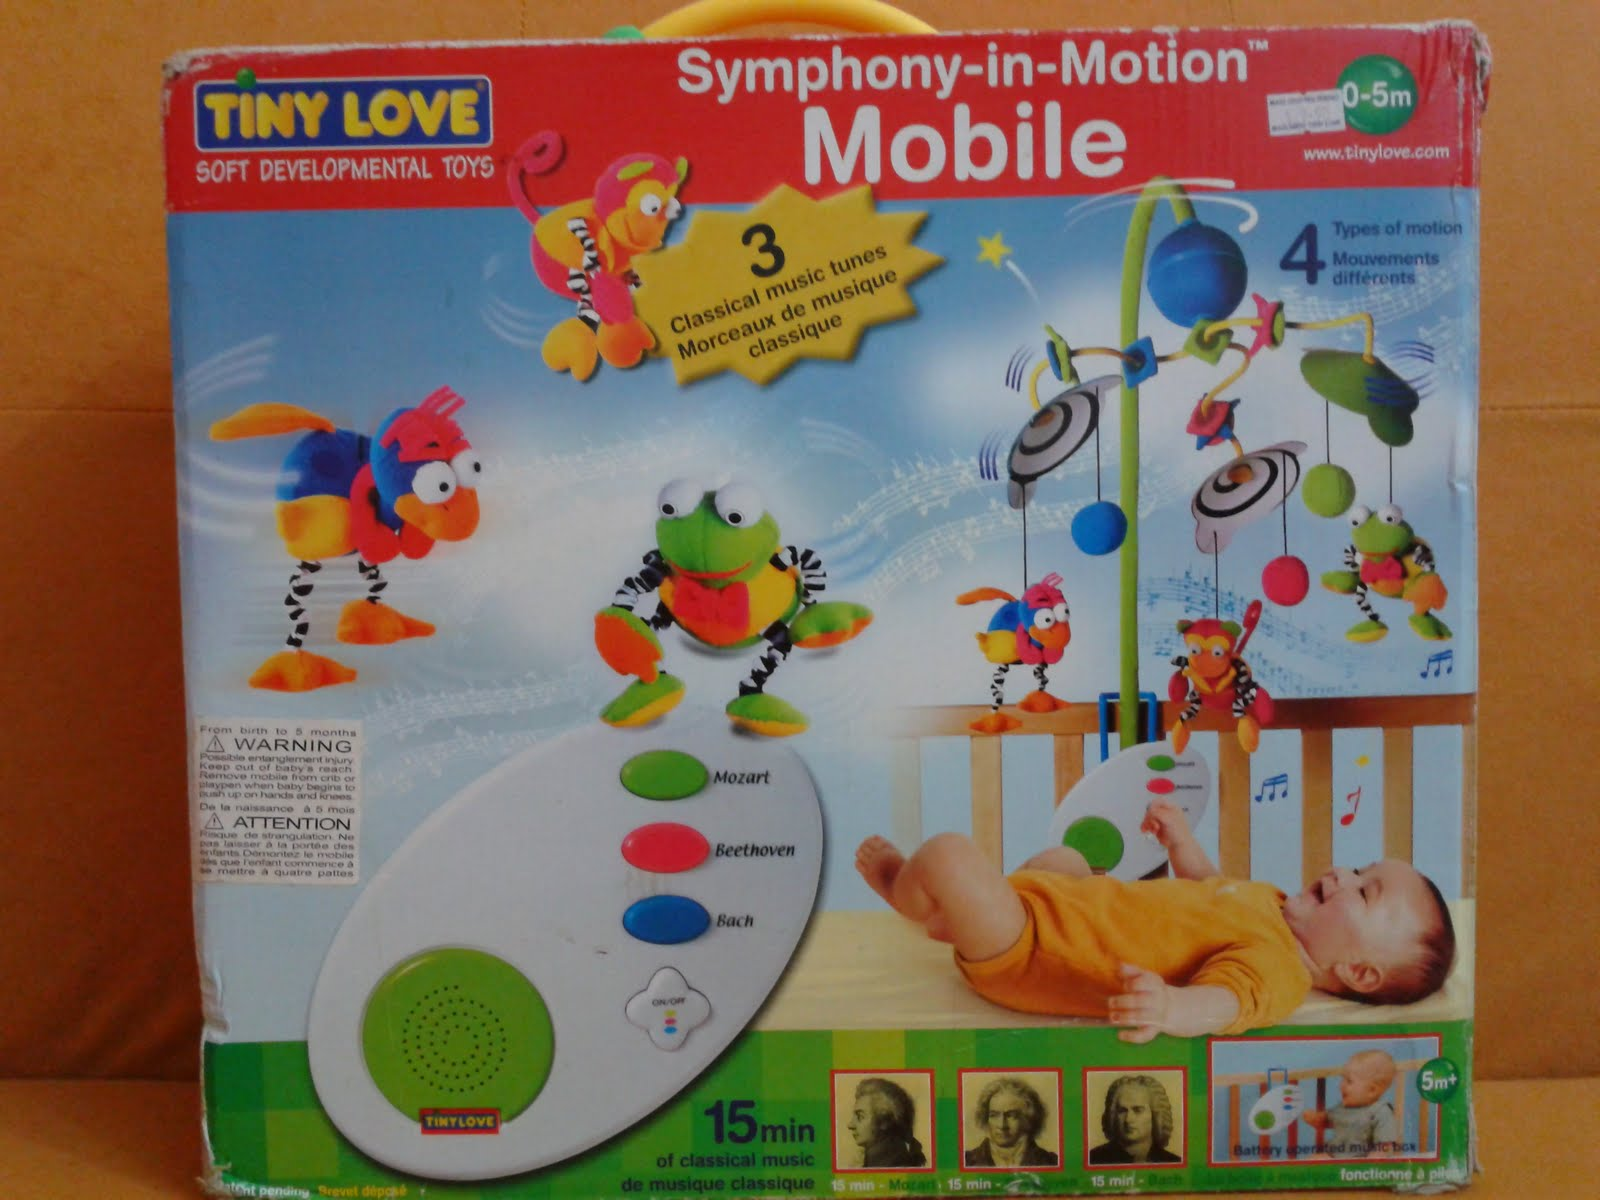 Pu3 Store @~Sold Item~@: Tiny Love Symphony in Motion Mobile